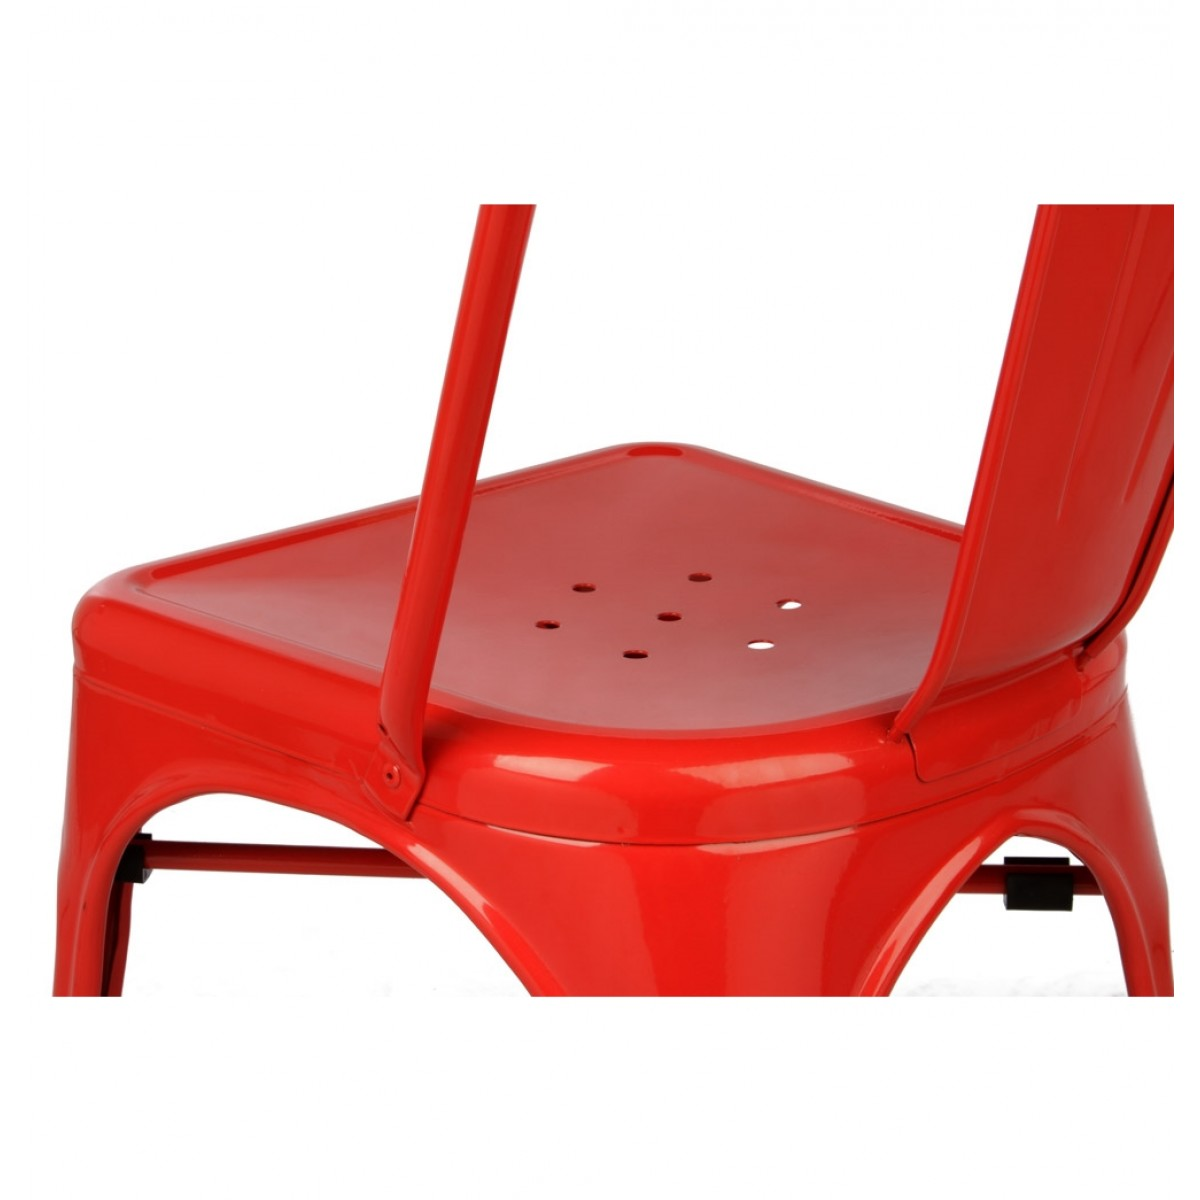 tolix style chair desk no wheels ikea metal industrial loft designer red cafe